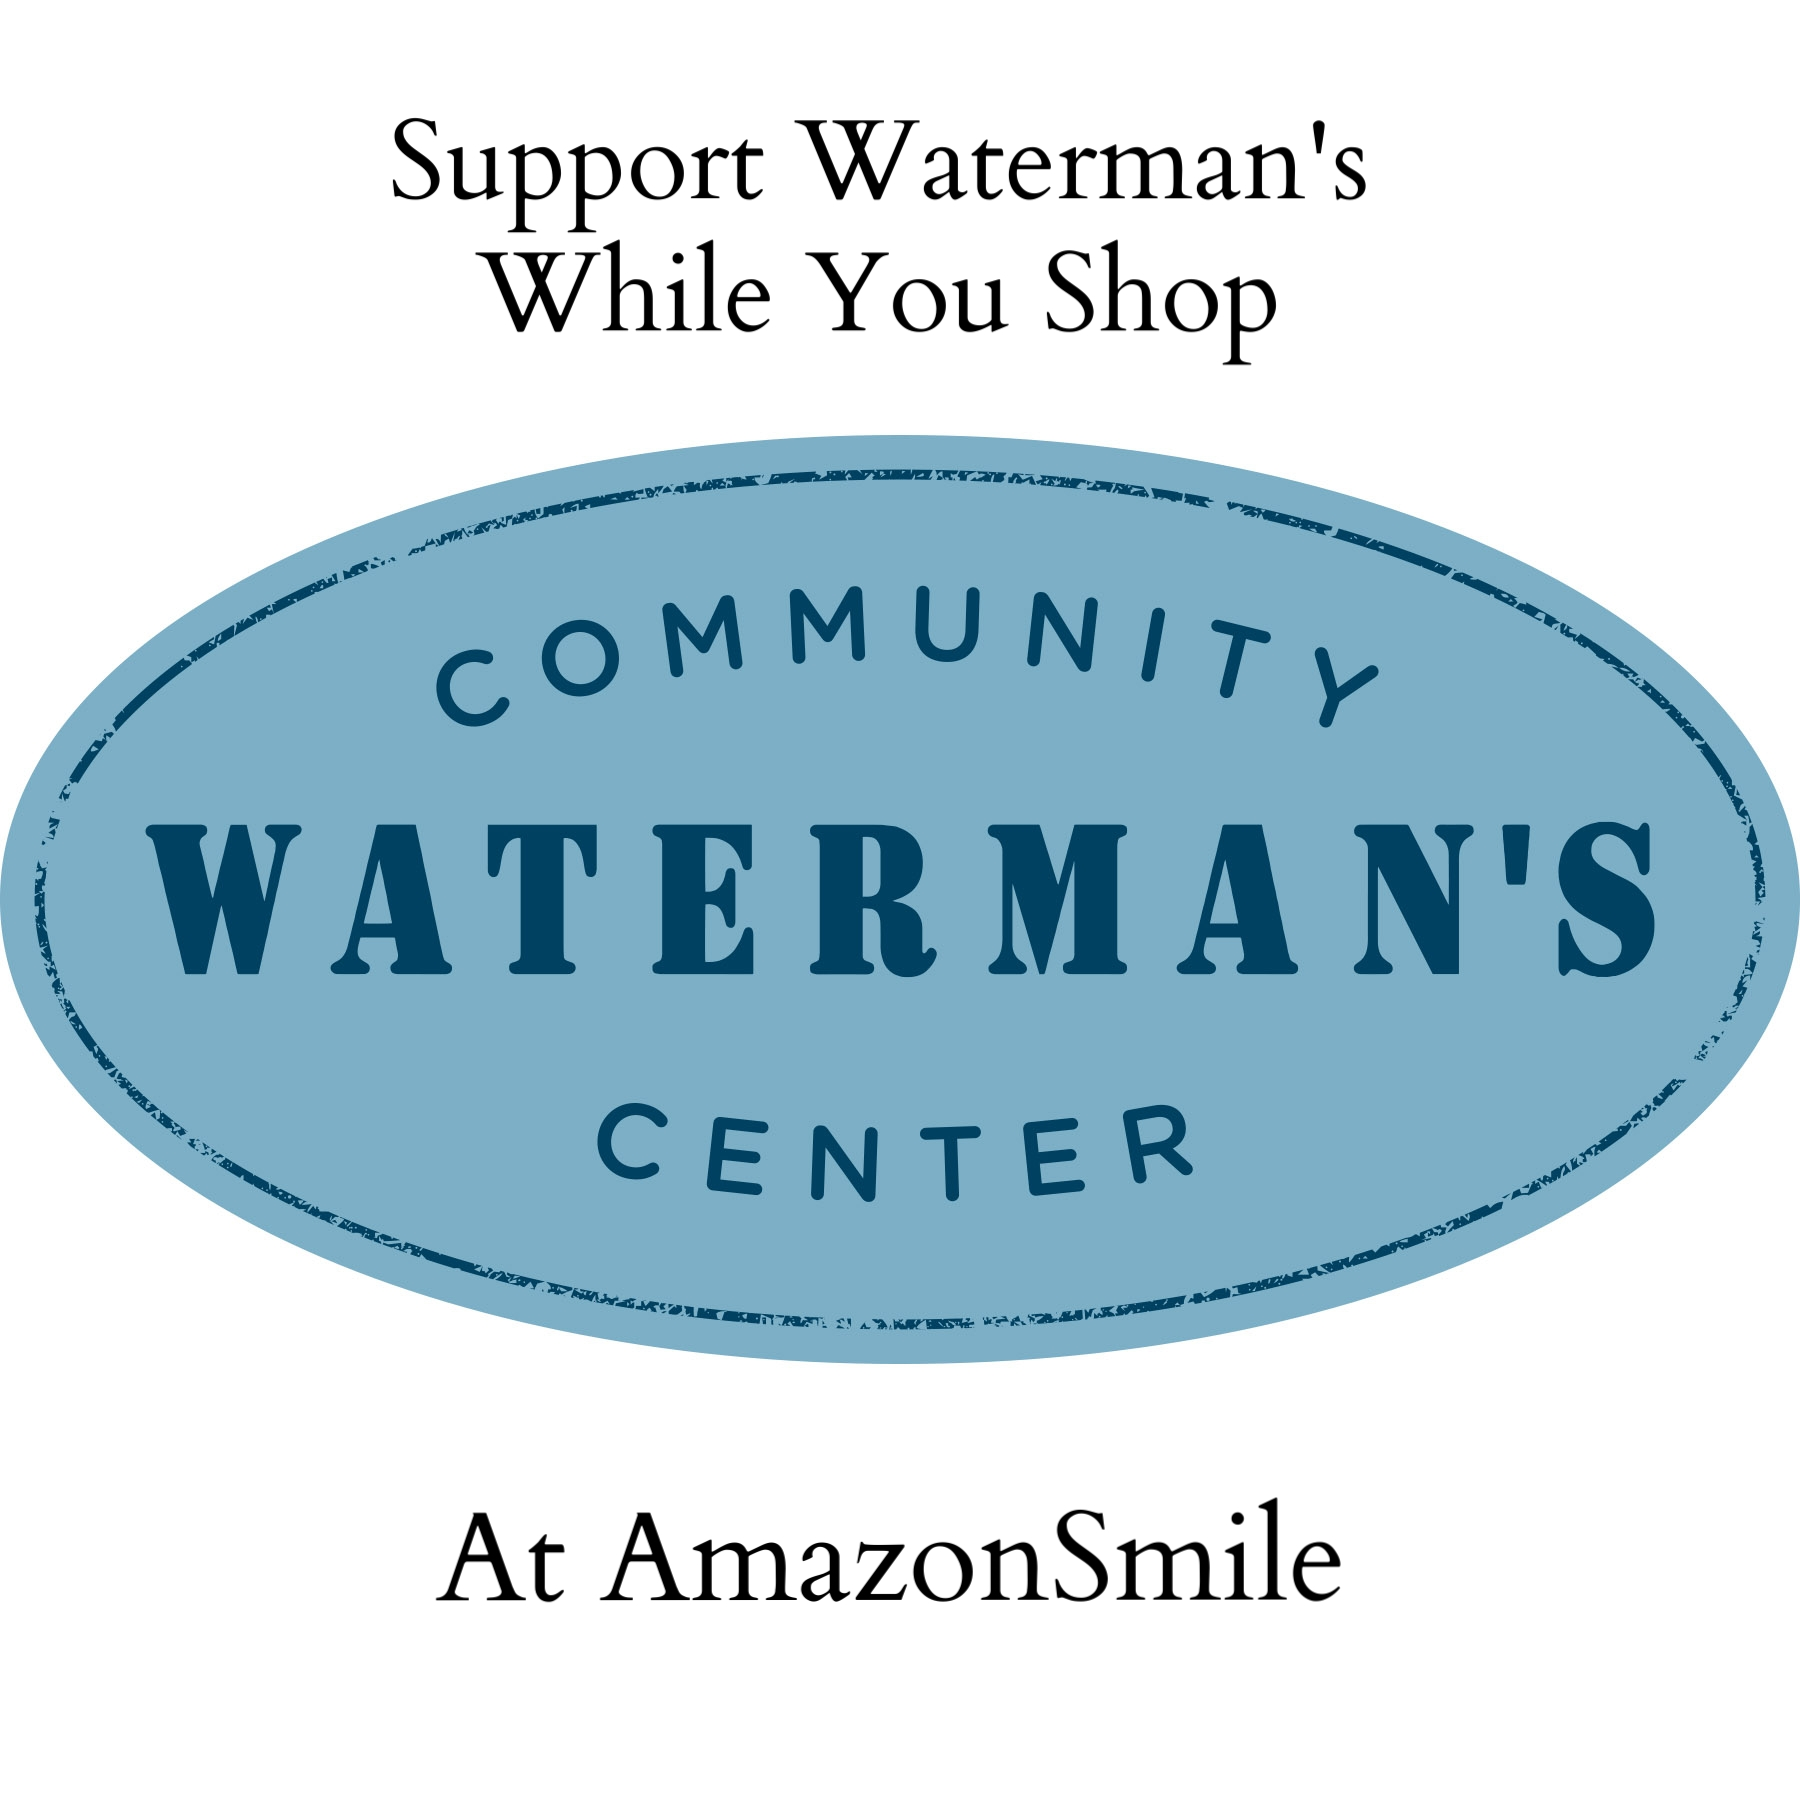 Support Waterman's While You Shop